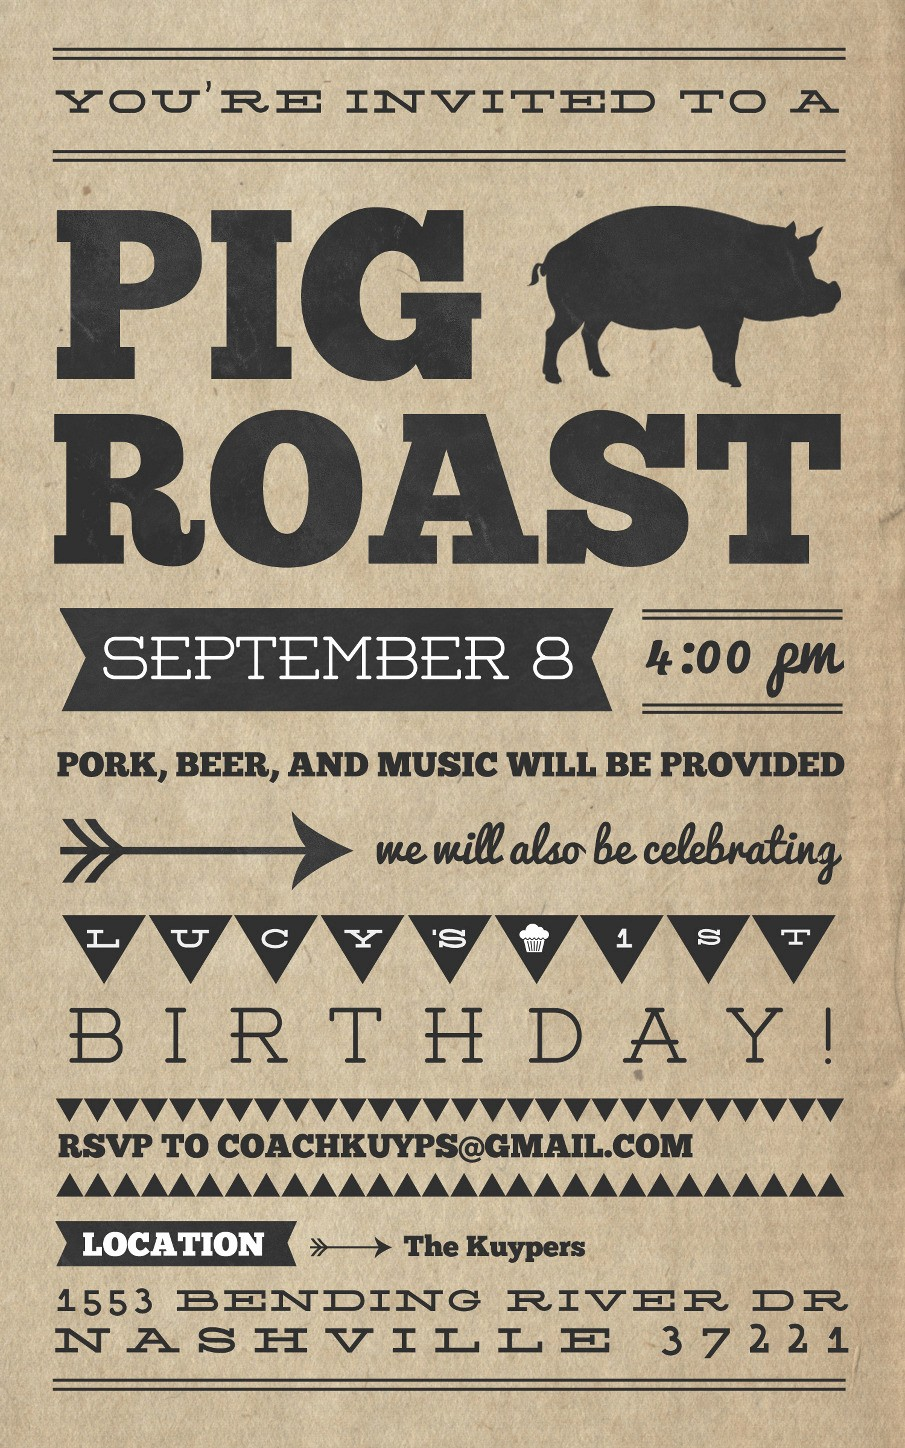 Pig Roast Invitation Template Free New Pig Roast Invitation Template Free